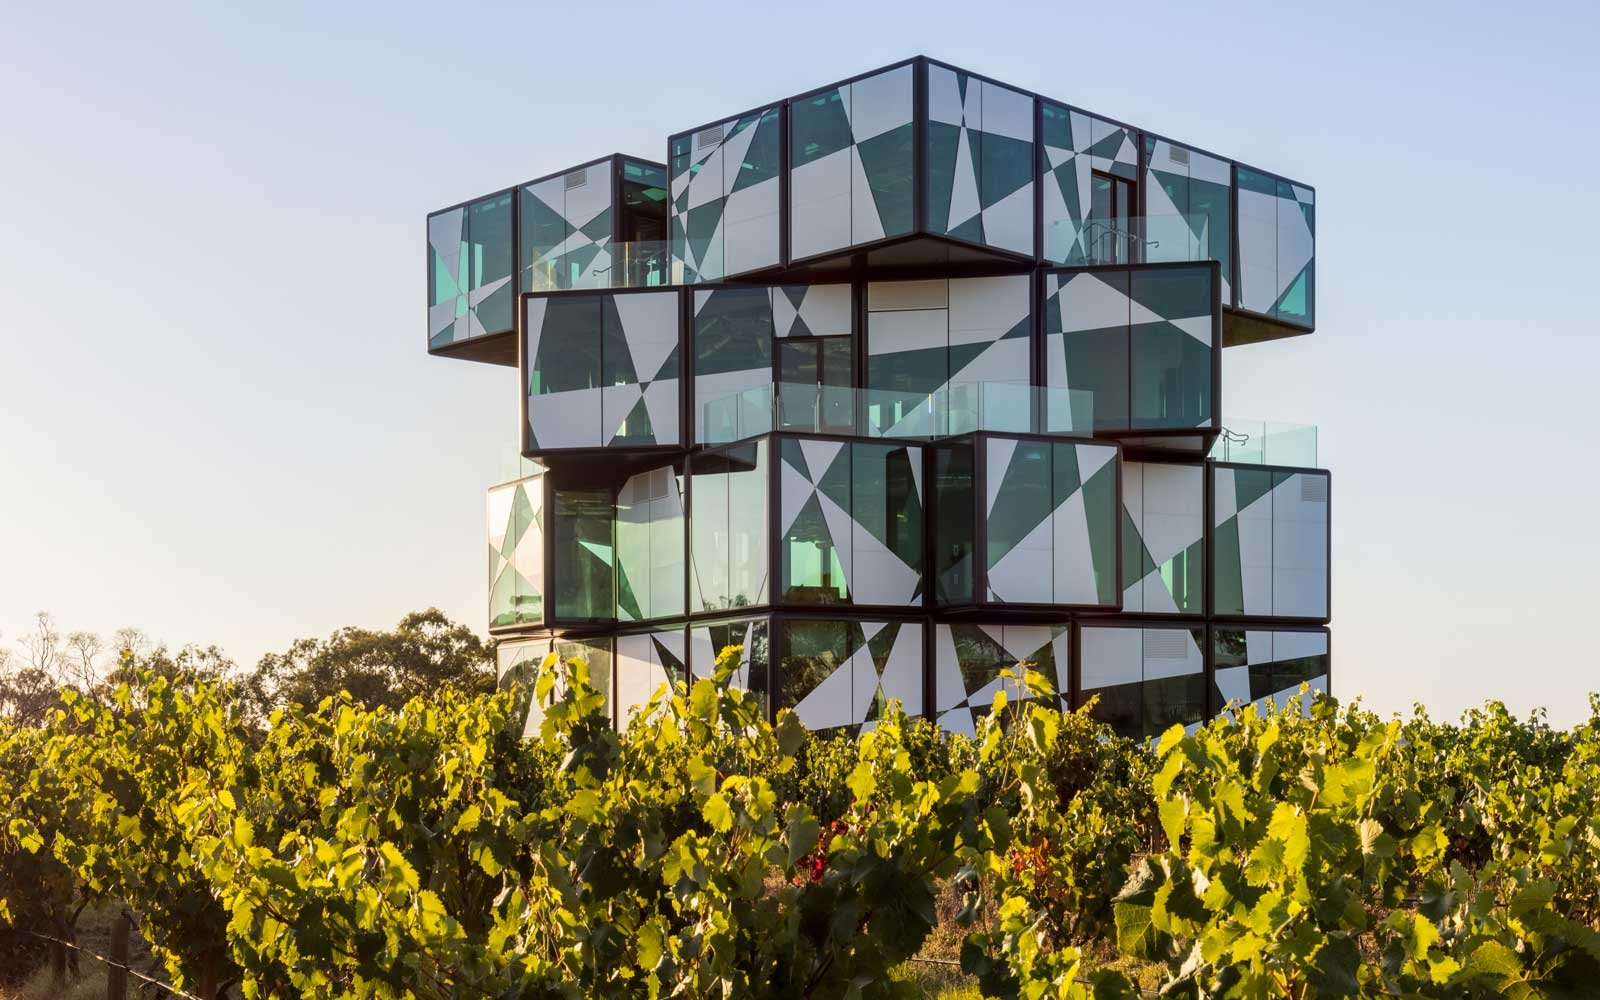 The Winery as Art Installation